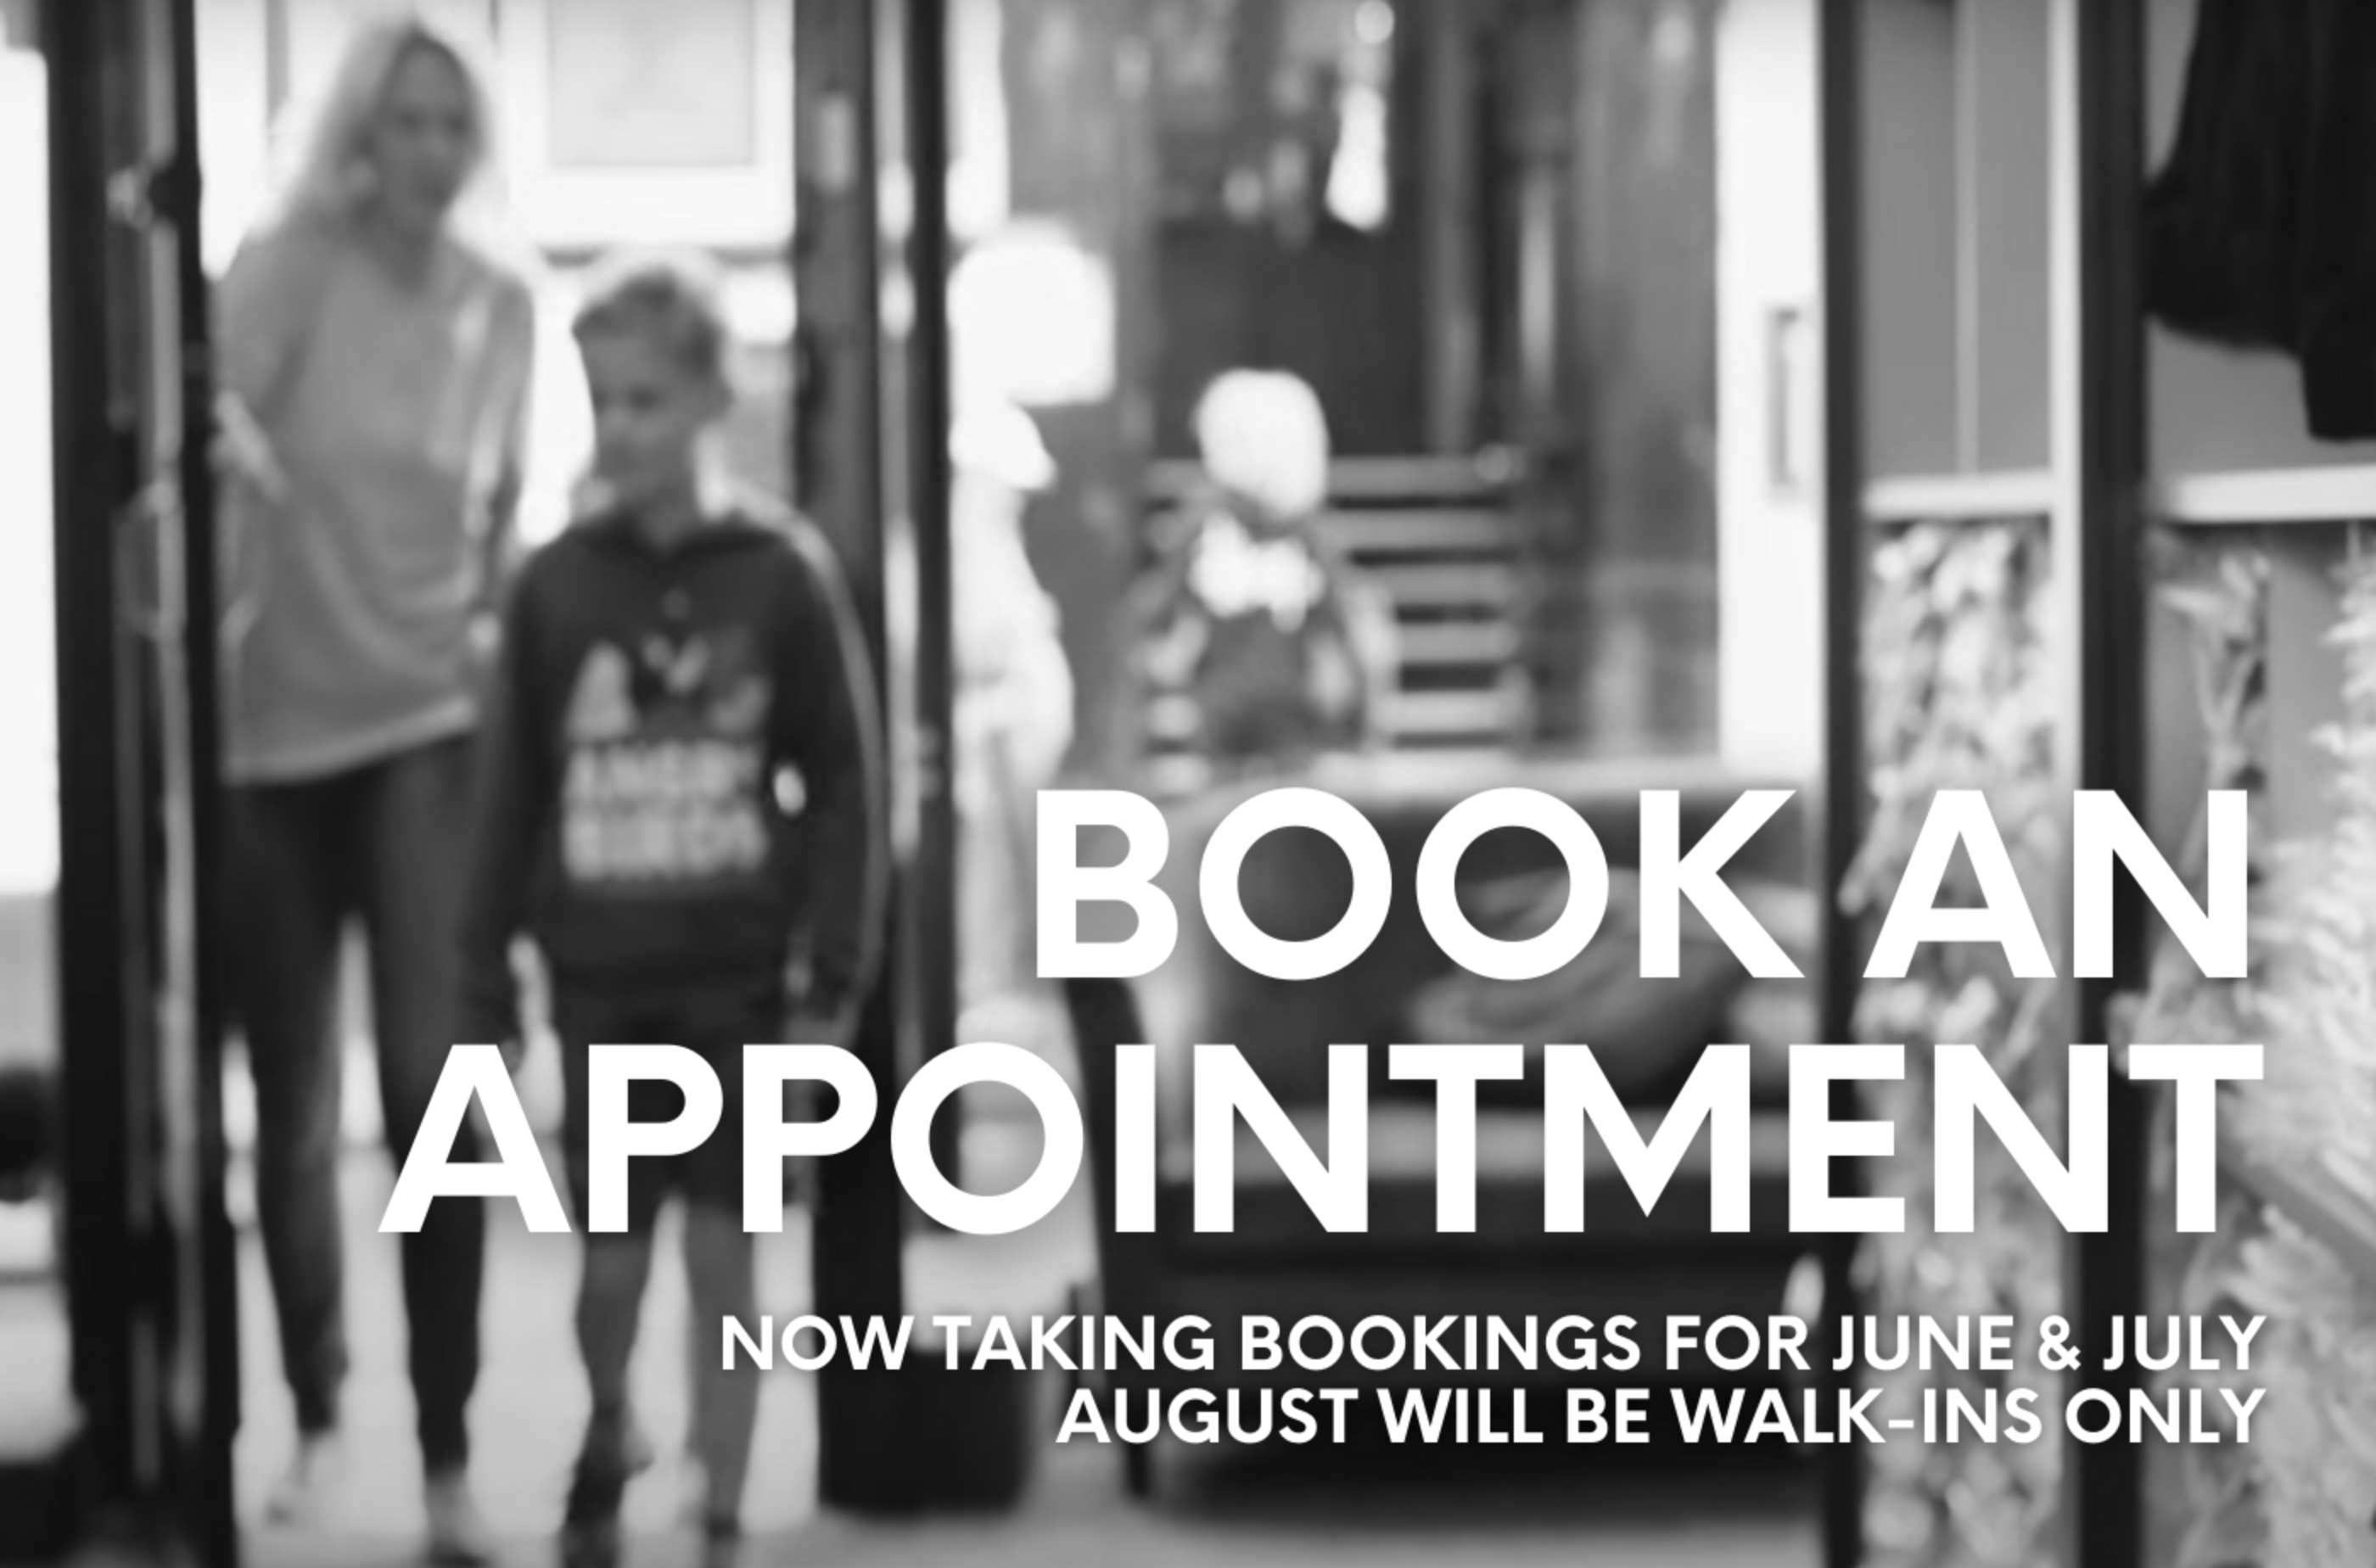 Book an appointment. Now taking bookings for June and July. August will be walk-ins only